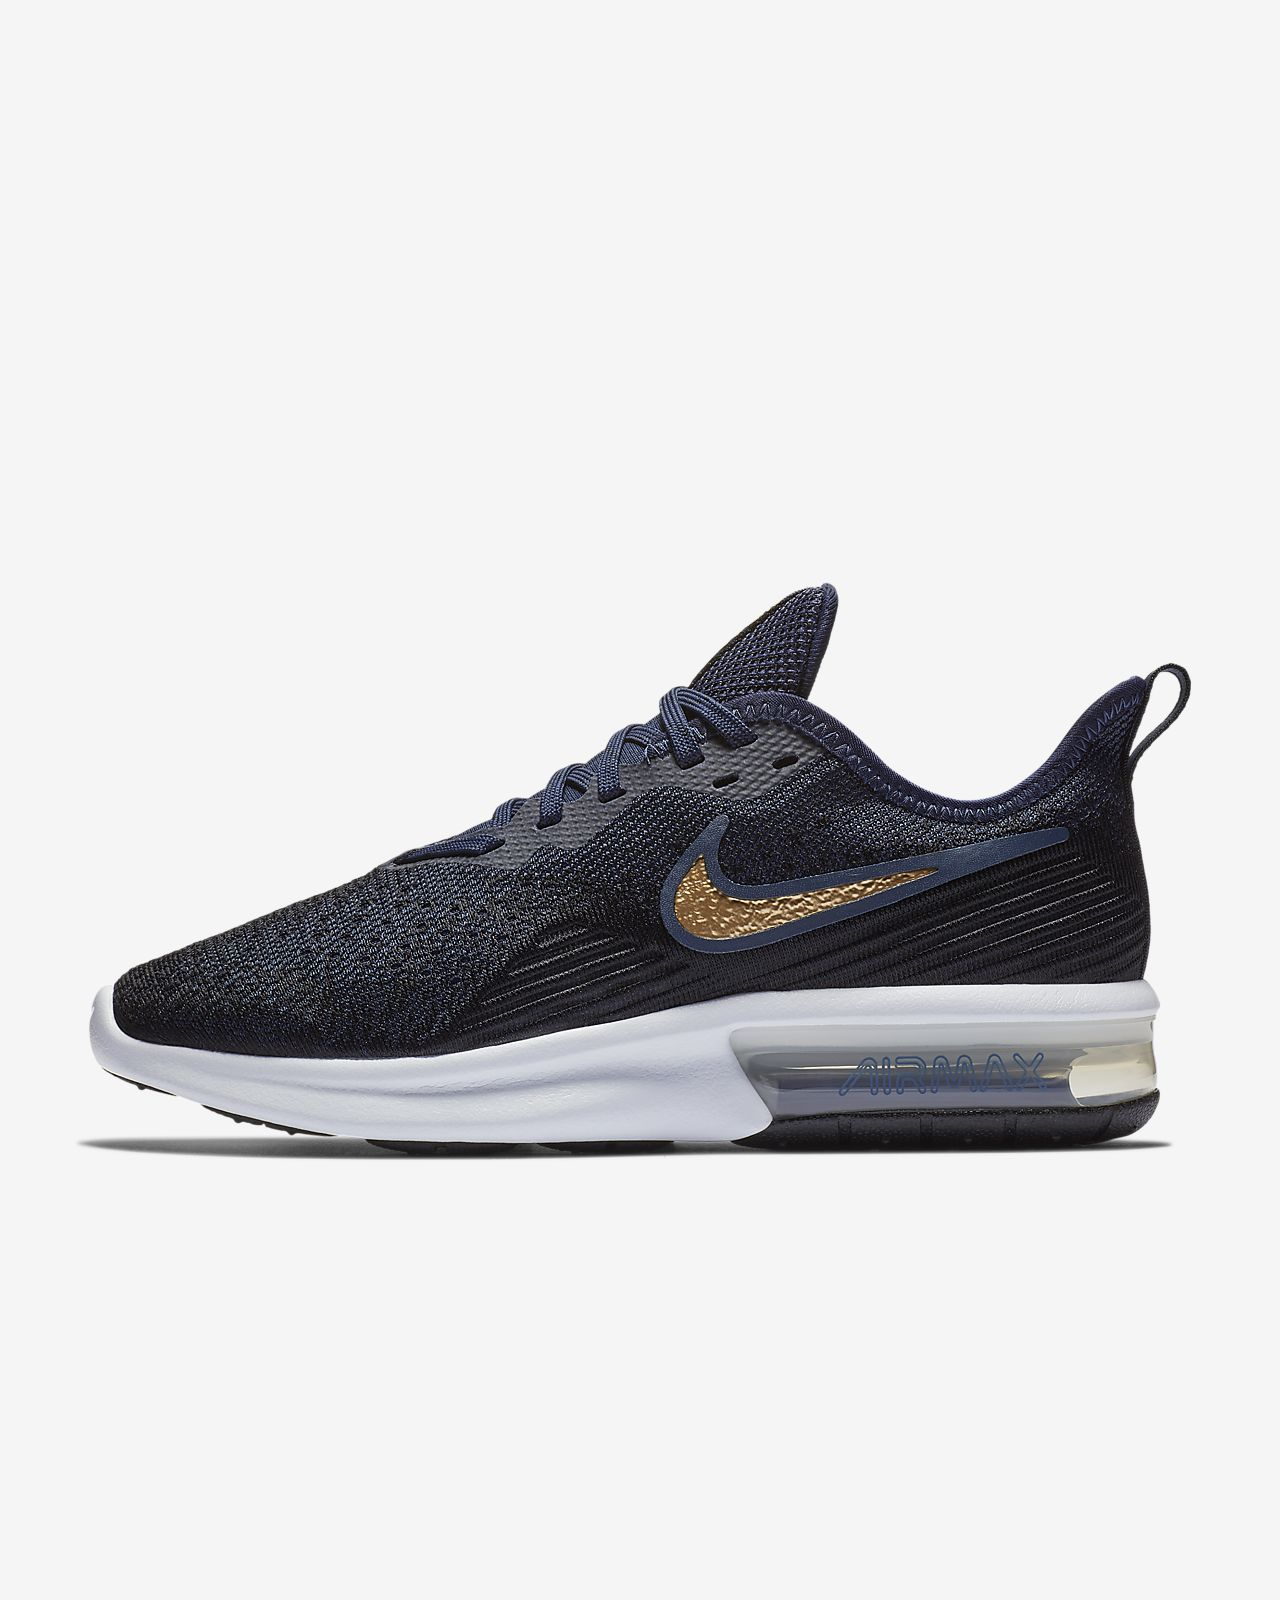 new product 7bb37 2fc12 ... Calzado para mujer Nike Air Max Sequent 4